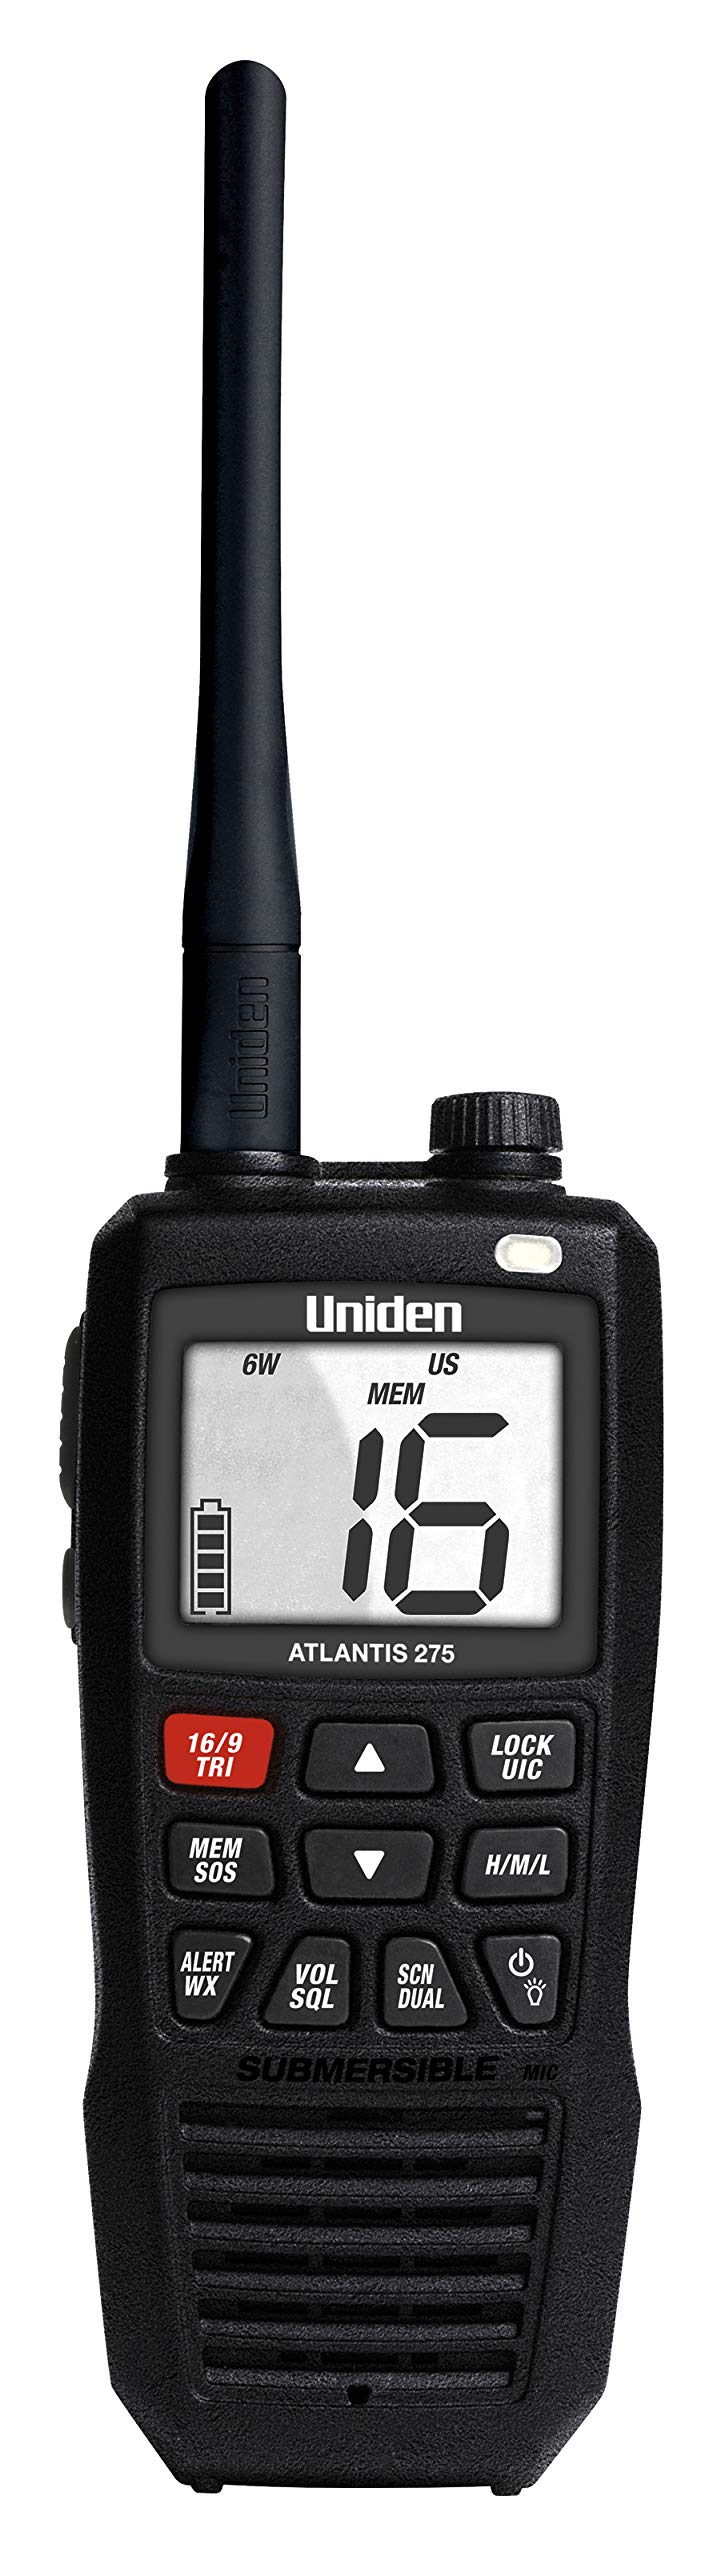 Uniden Atlantis 275 Handheld Two-Way VHF Marine Radio, Floating IPX8 Submersible Waterproof, Large Dual-Color Screen, 6-Watt, All USA/International/Canadian Marine Channels, NOAA Weather Alerts